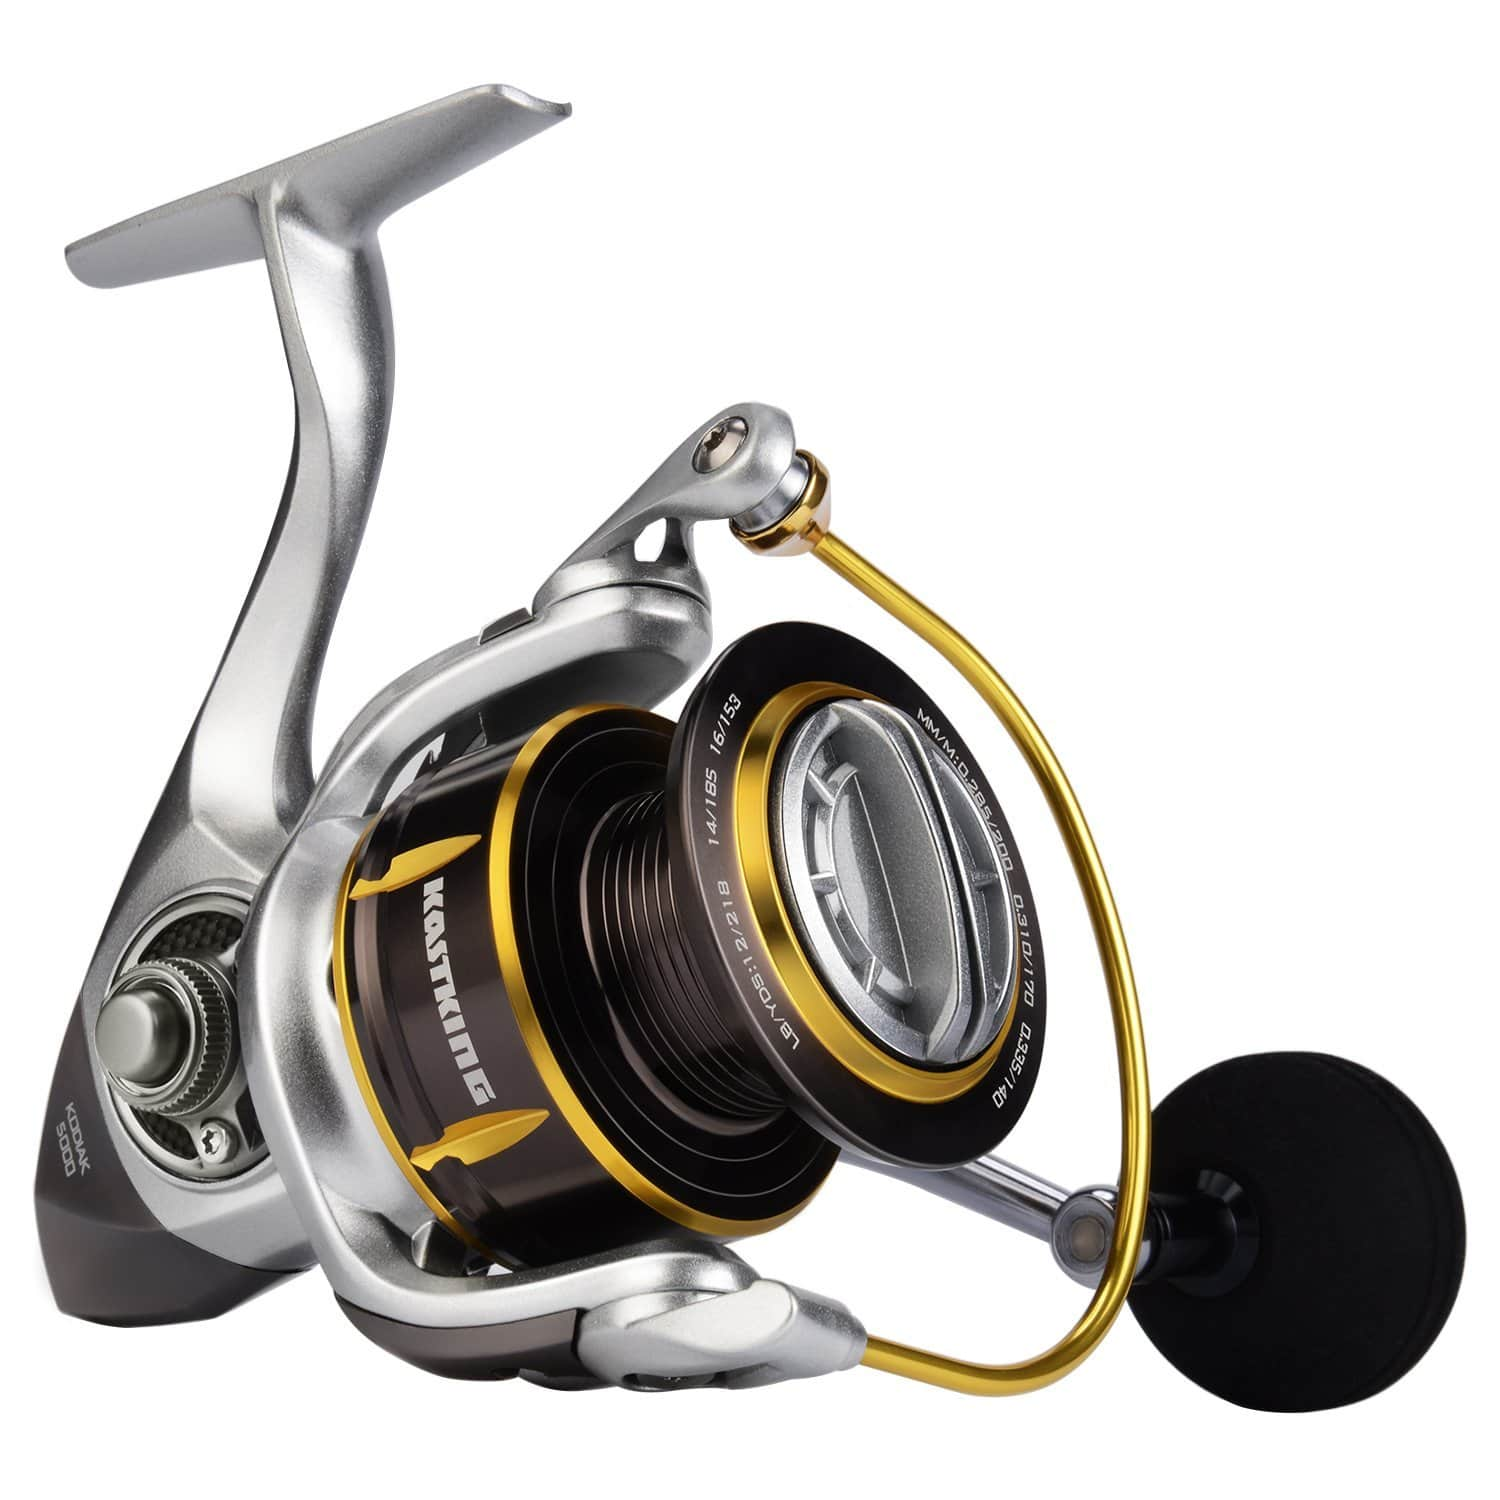 Kodiak Saltwater Spinning Fishing Reel - 39.5 LB Carbon Fiber Drag, All Aluminum, 10 + 1 Stainless Steel Shielded Bearings, Enhanced Stainless Steel Main Shaft - $48.99-$62.99